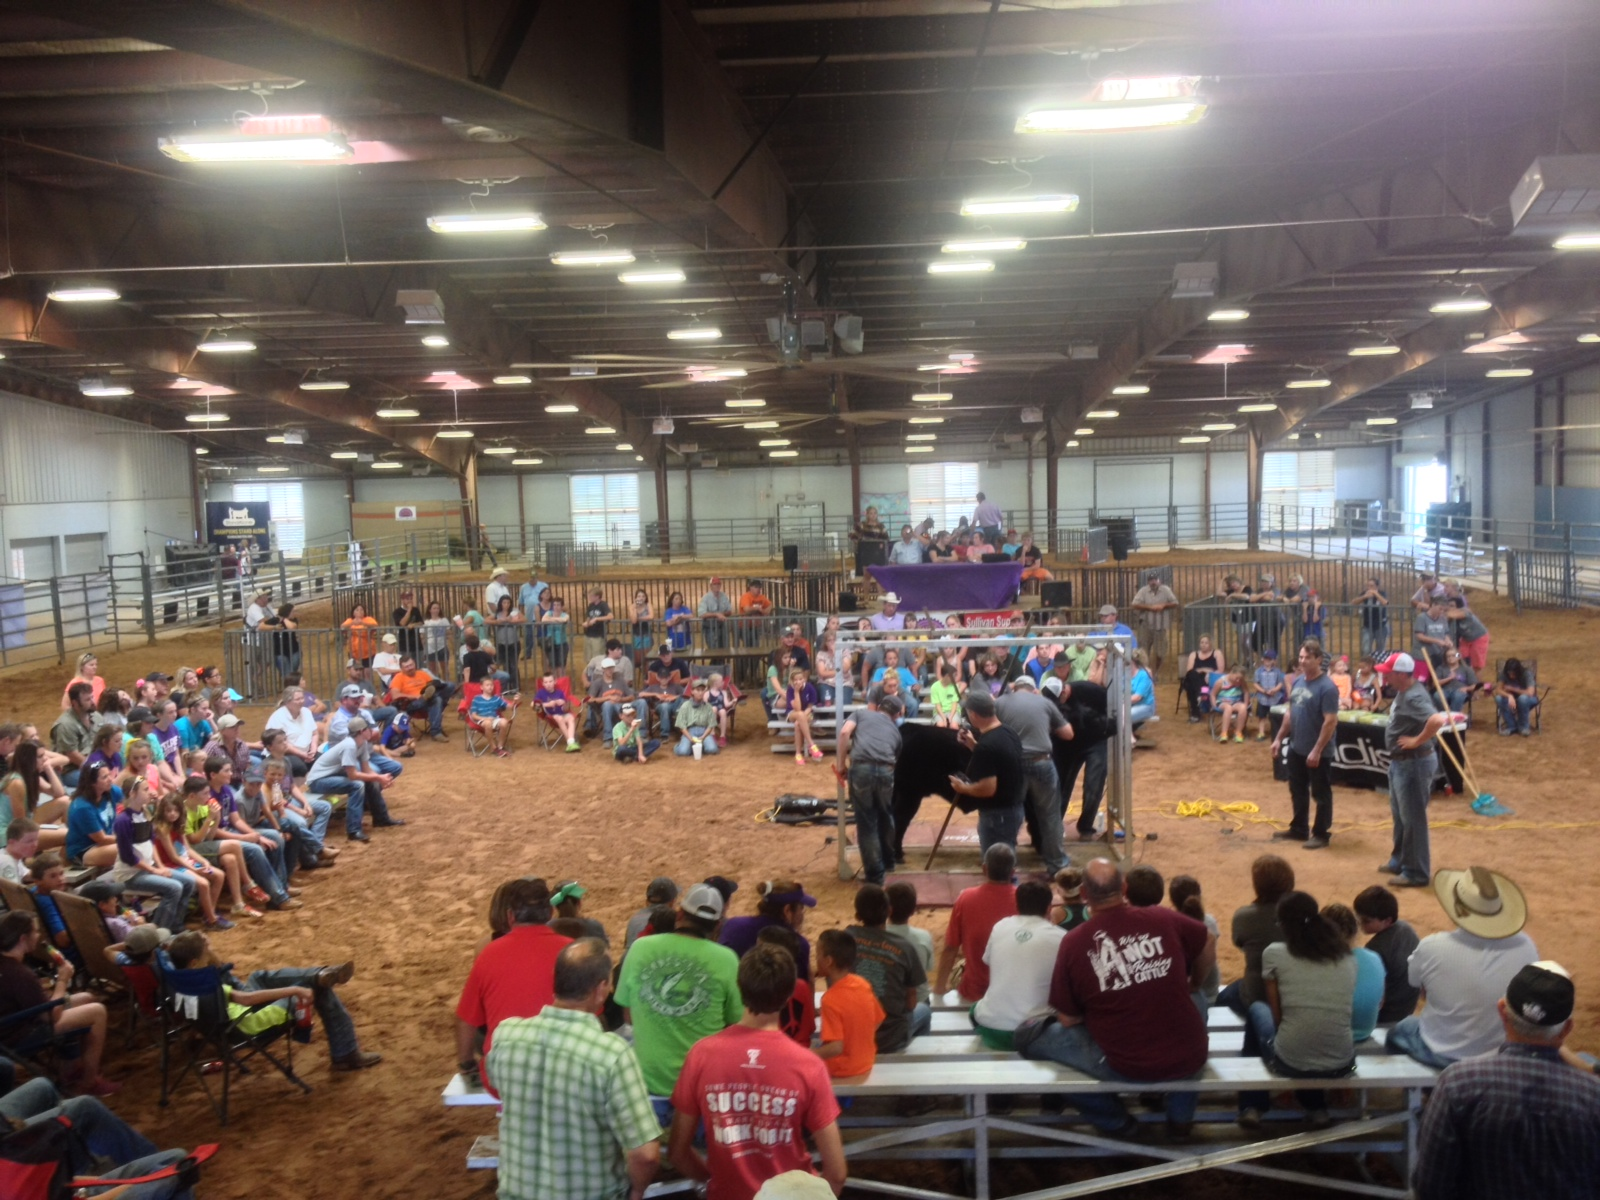 Stock Show Univeristy at Battle of Cattle – Belton, TX | The